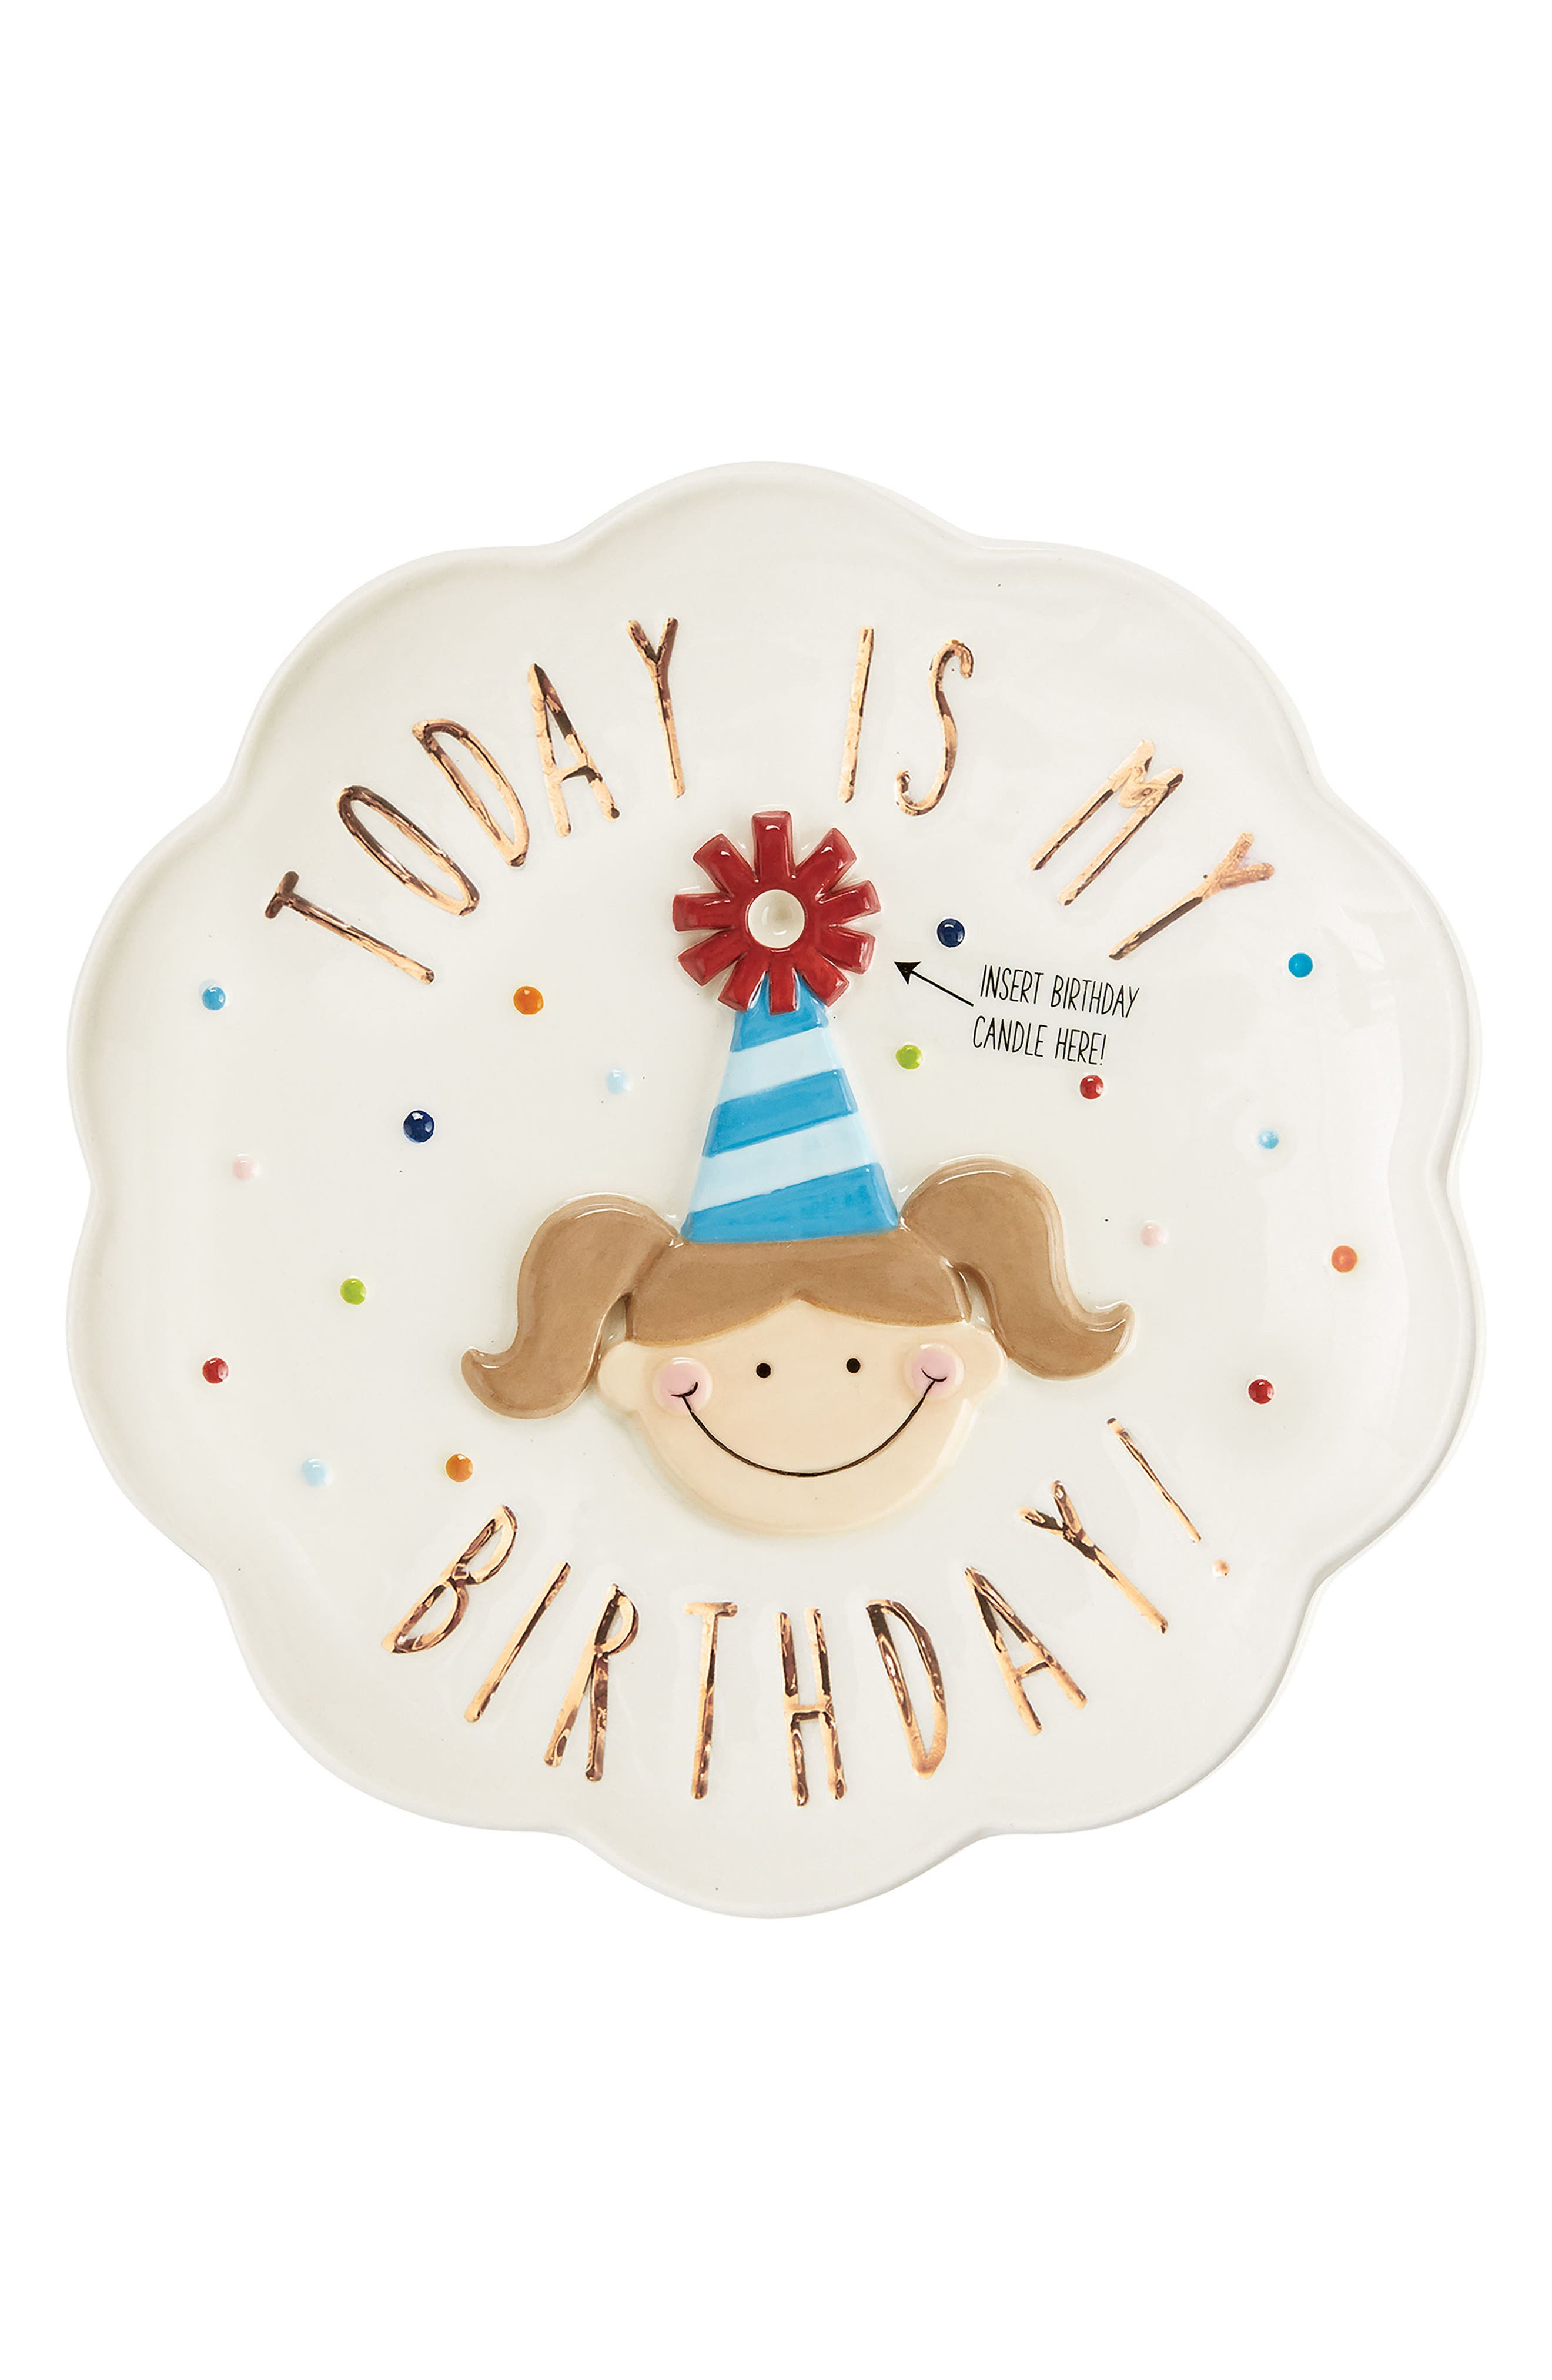 Birthday Girl Candle Plate,                         Main,                         color, 100